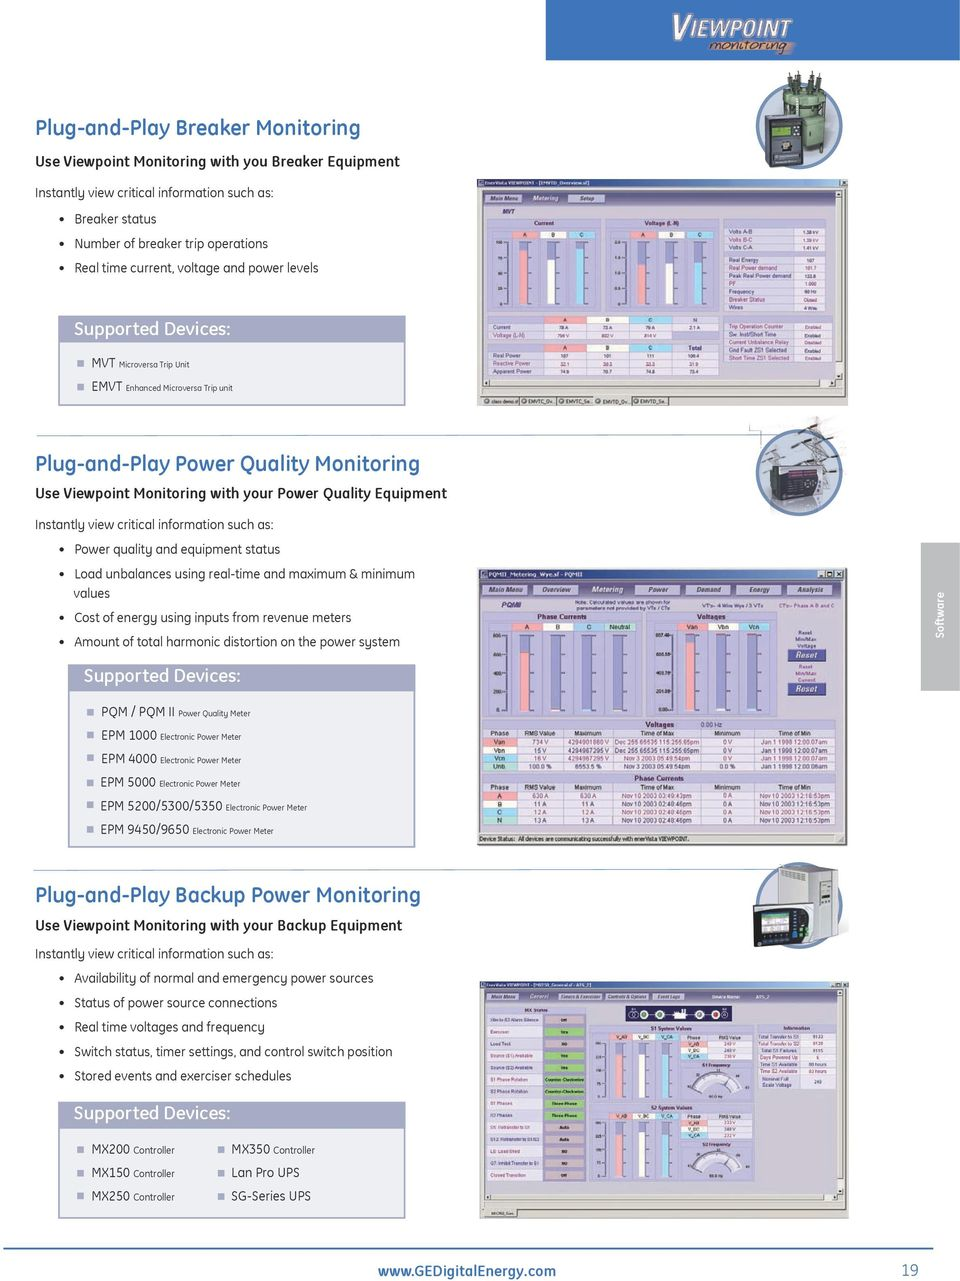 Equipment Instantly view critical information such as: Power quality and equipment status Load unbalances using real-time and maximum & minimum values Cost of energy using inputs from revenue meters